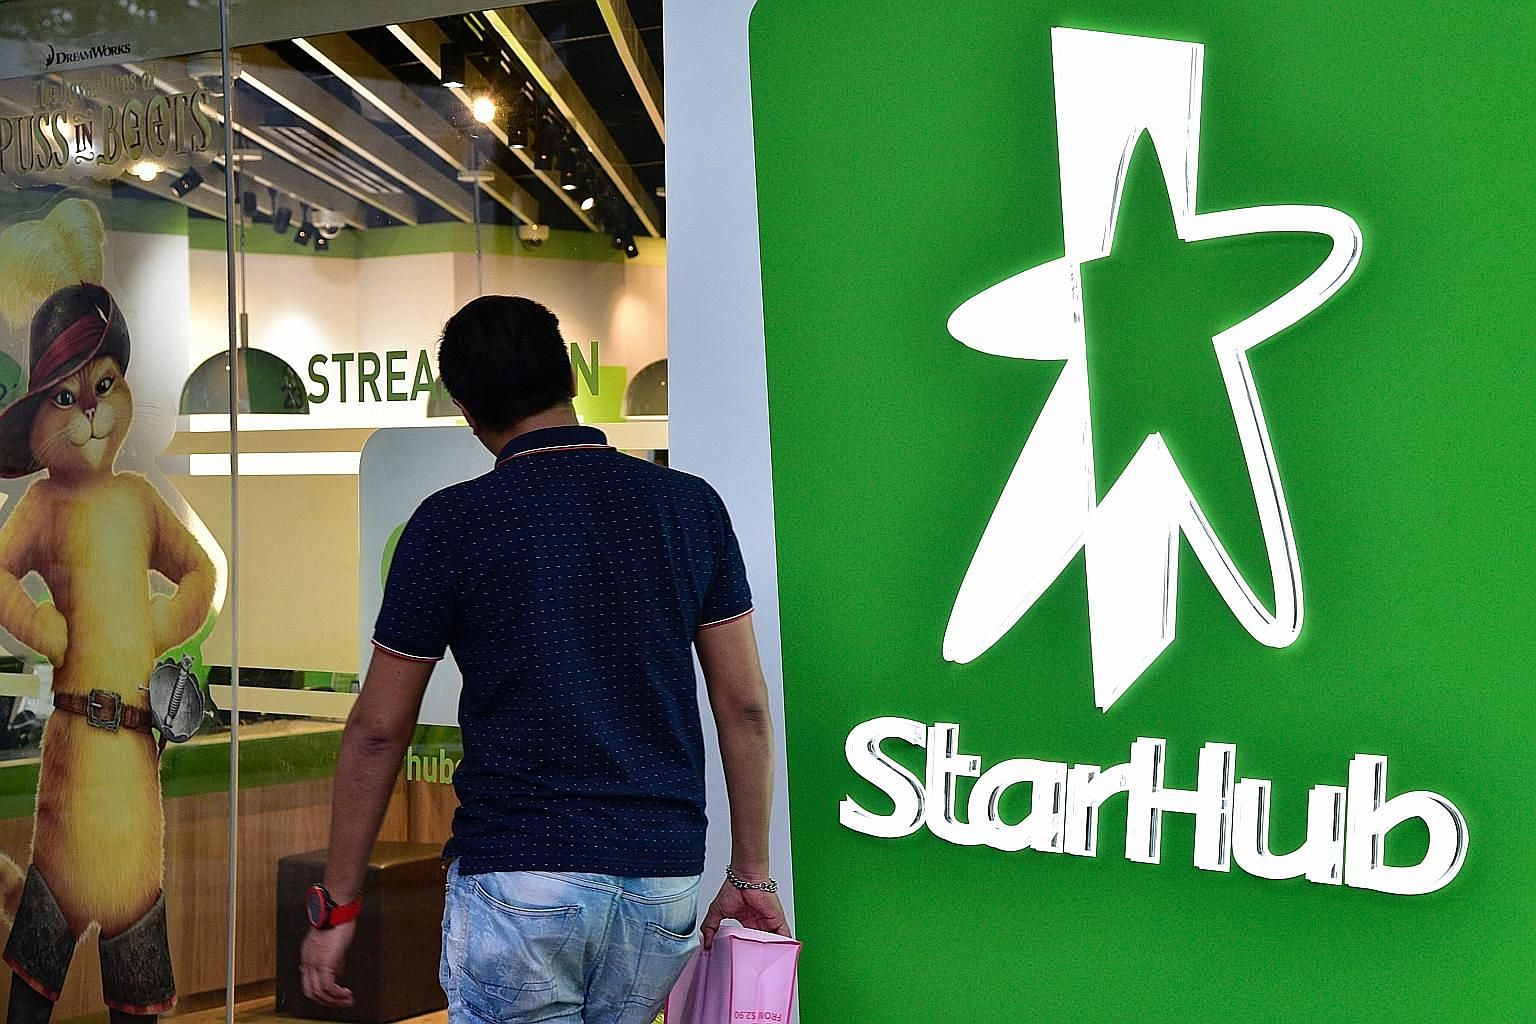 StarHub's enterprise, or corporate services, business has been growing by about 20 per cent a year and will probably make up more than half of total revenue within two years, said chief executive officer Peter Kaliaropoulos.